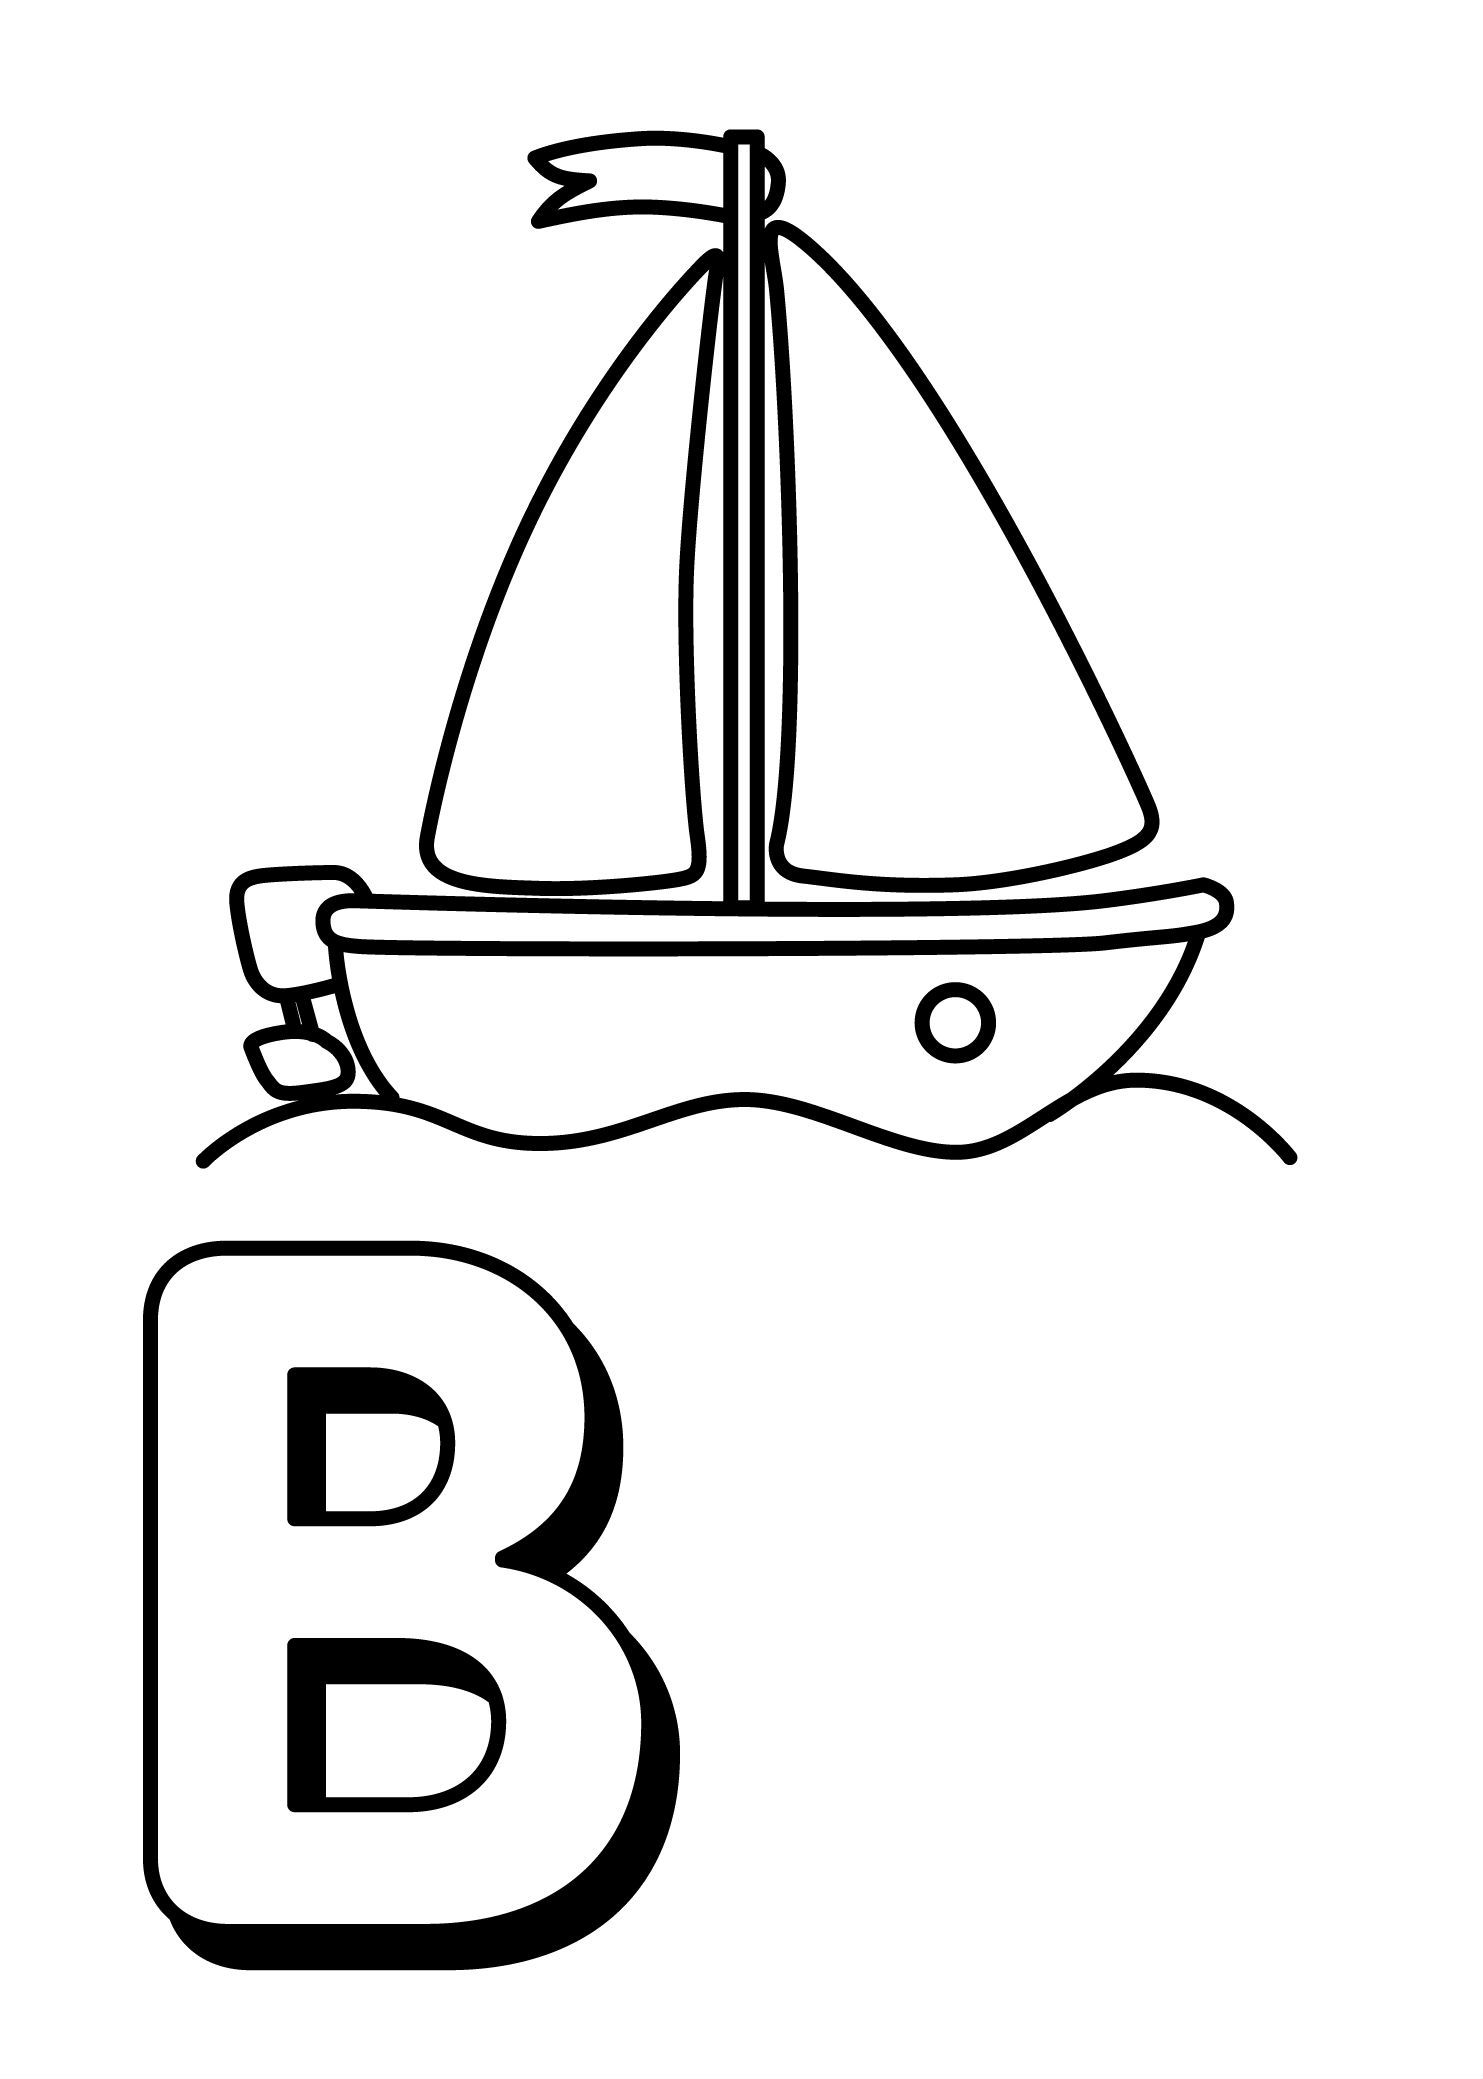 Trains Alphabet Is For Boat Coloring Pages For Kids Fb7 Printable Trains Alphabet Colorin Alphabet Coloring Pages Letter B Coloring Pages Abc Coloring Pages [ 2079 x 1483 Pixel ]